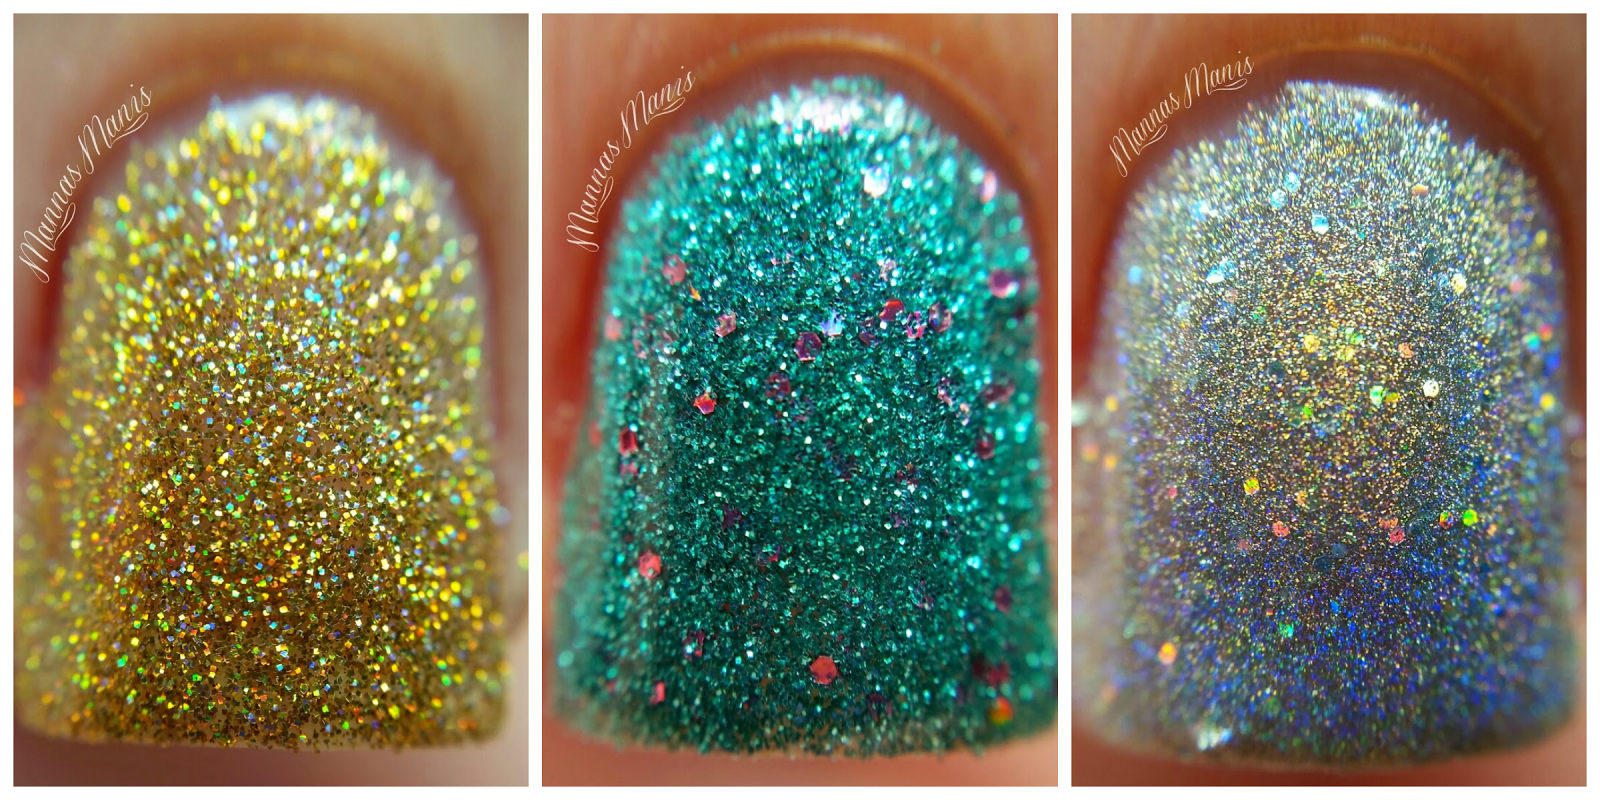 Macro shots of Orly Mirrorball, Steal the Spotlight, and Bling